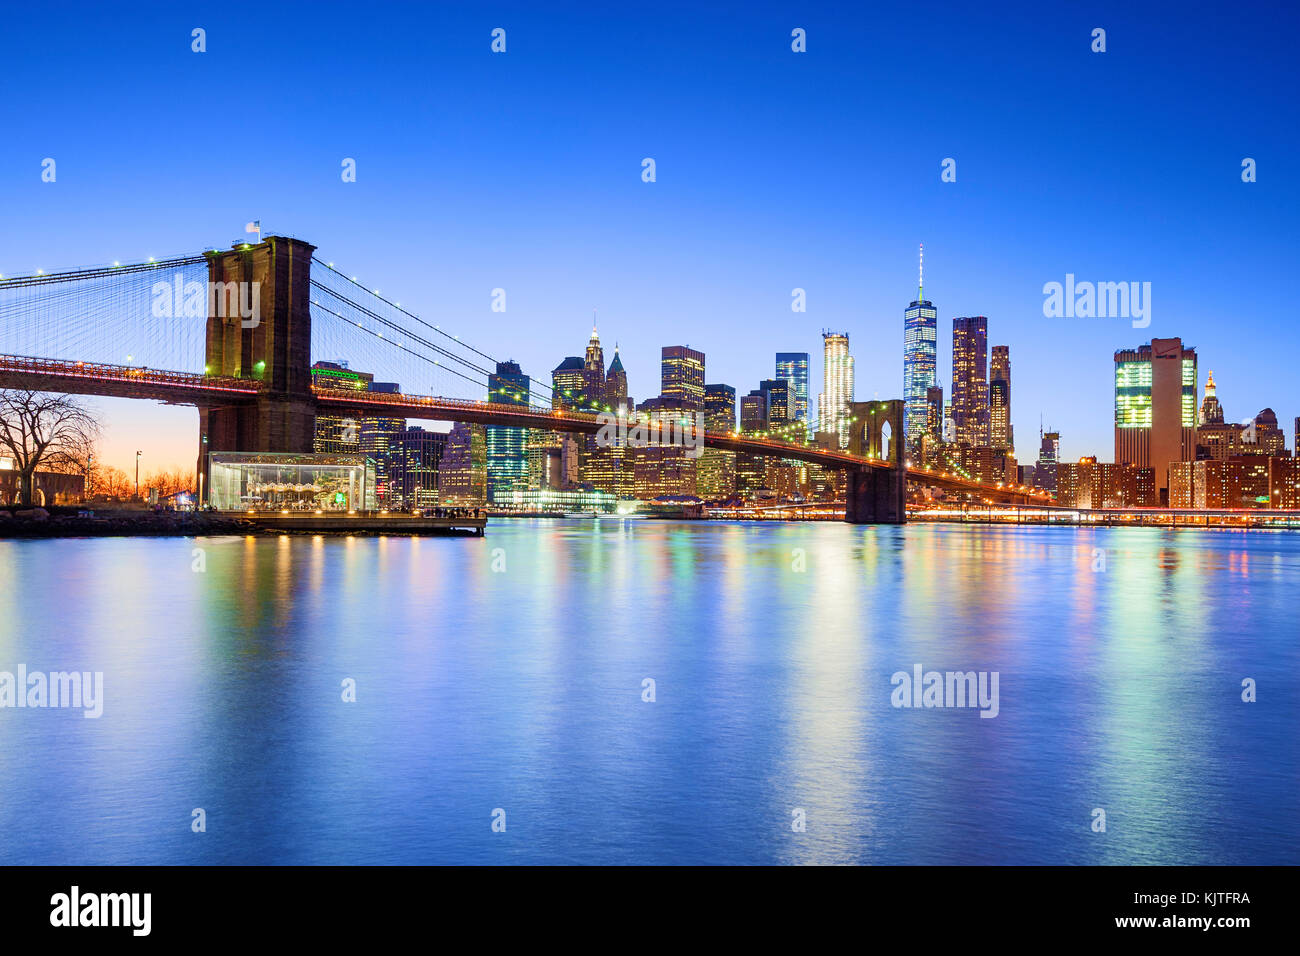 new york skyline new york city brooklyn bridge one wtc world trade center stockfoto bild. Black Bedroom Furniture Sets. Home Design Ideas